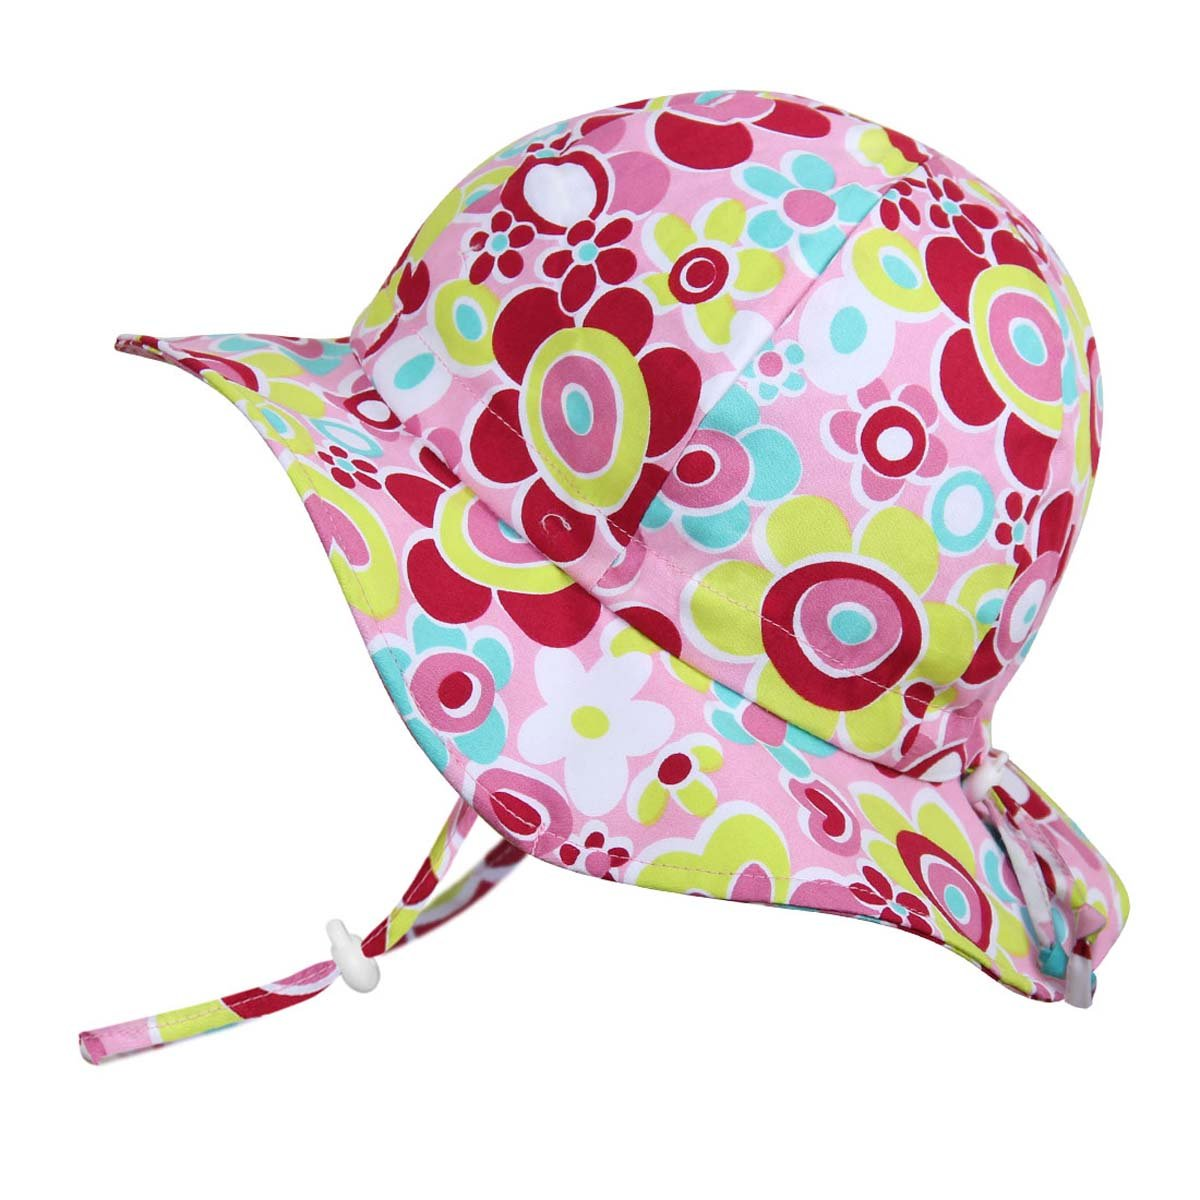 Twinklebelle Children's Cotton Sun Protective Hats 50 UPF, Adjustable, Stay-On, Packable (L: 2-12Y, Floppy Hat: Pink Sweethearts)